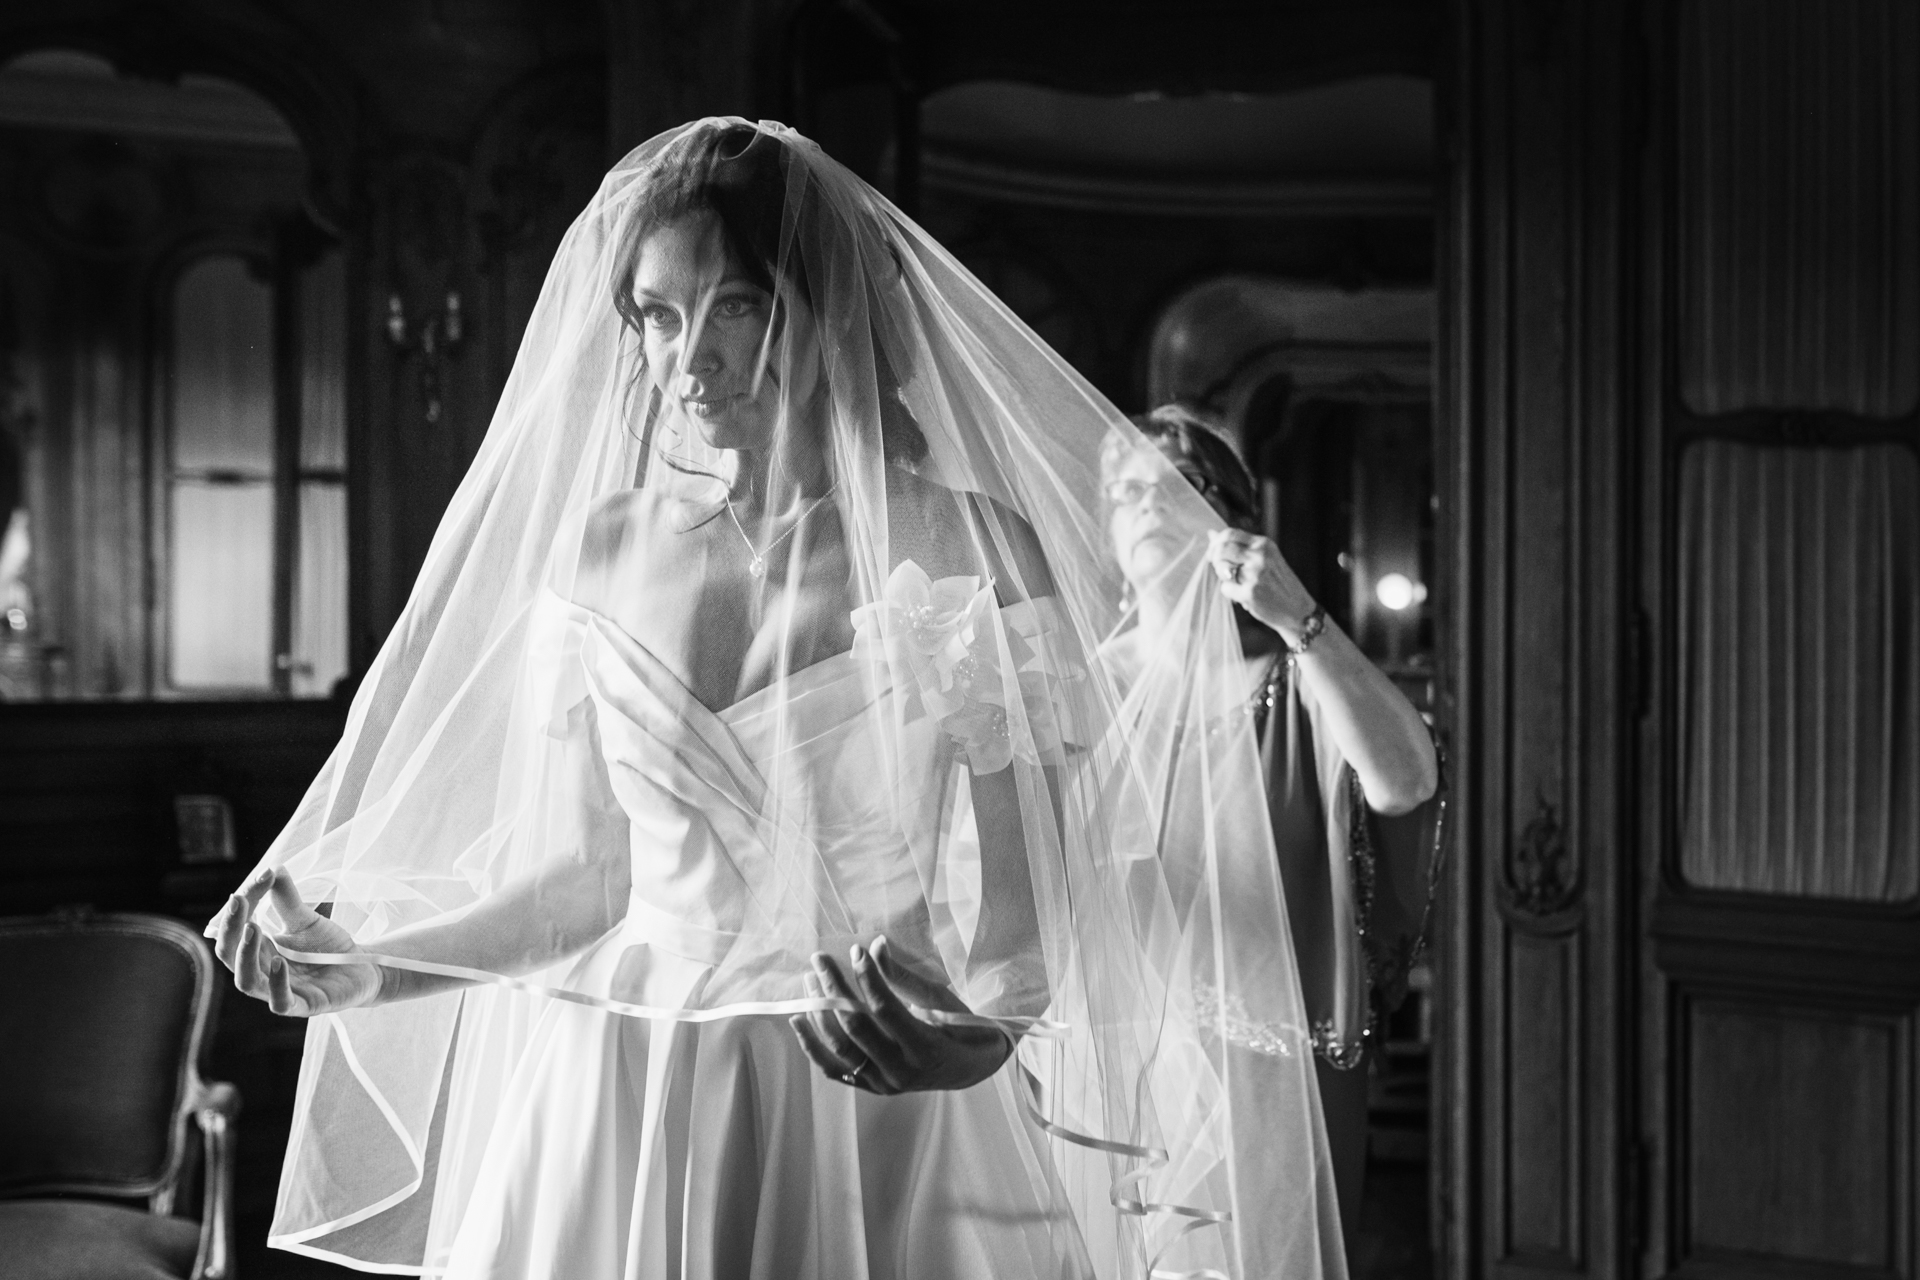 France Bride Elopement Photography | The bride's mom, who was present for this wonderful day, helps her adjust the veil before the ceremony